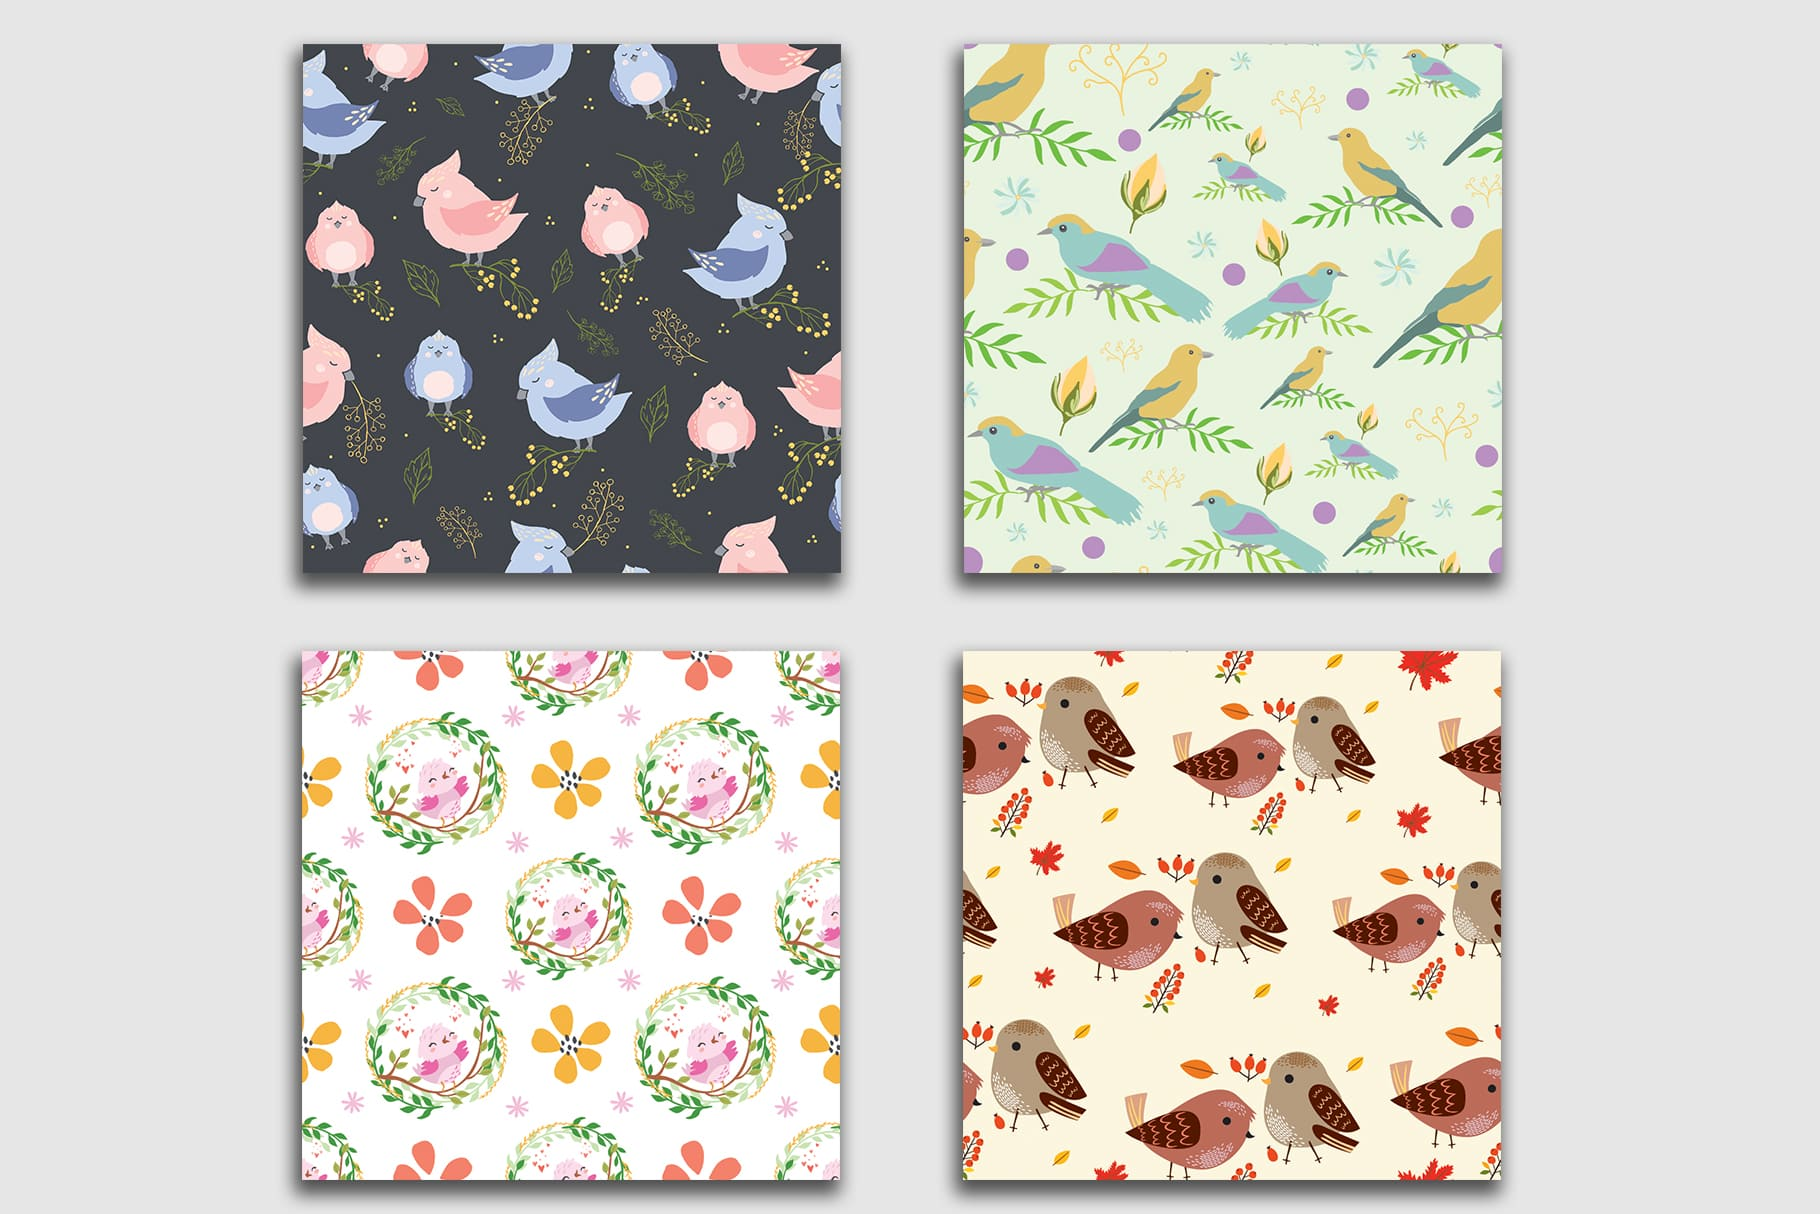 Square tiles in different moderate colors with different types of birds.